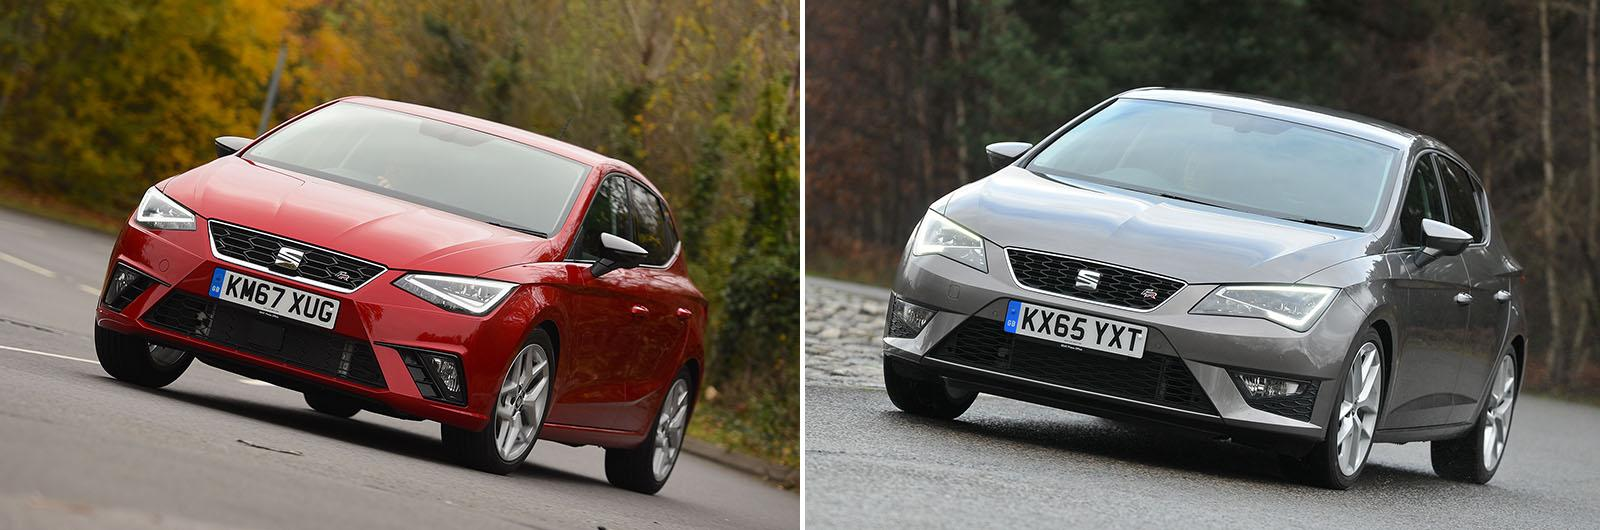 New Ford Fiesta vs used Ford Focus: which is best?